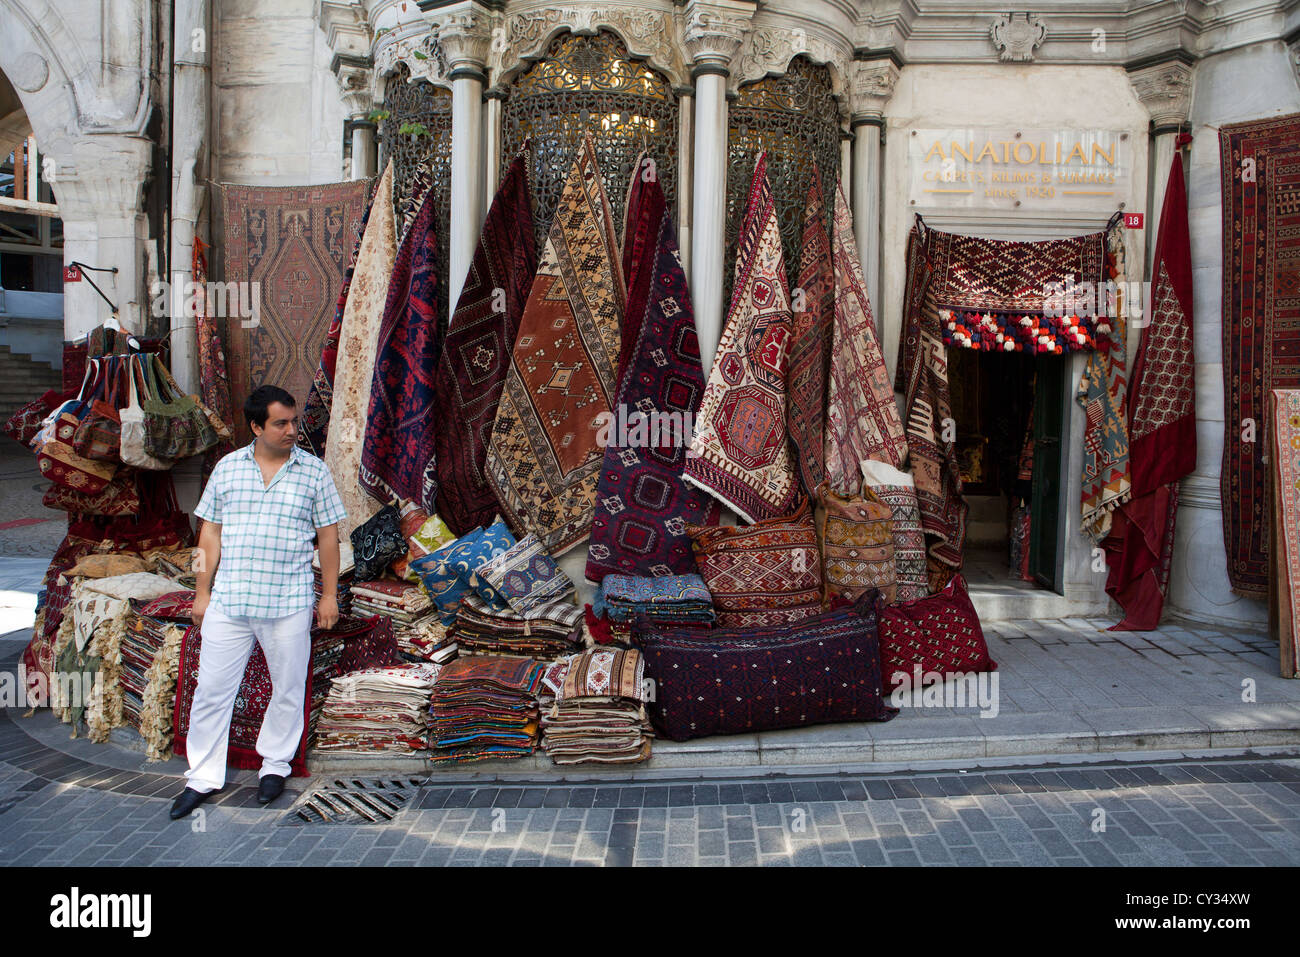 Constantinople craftmanship export shop weave rug - Stock Image